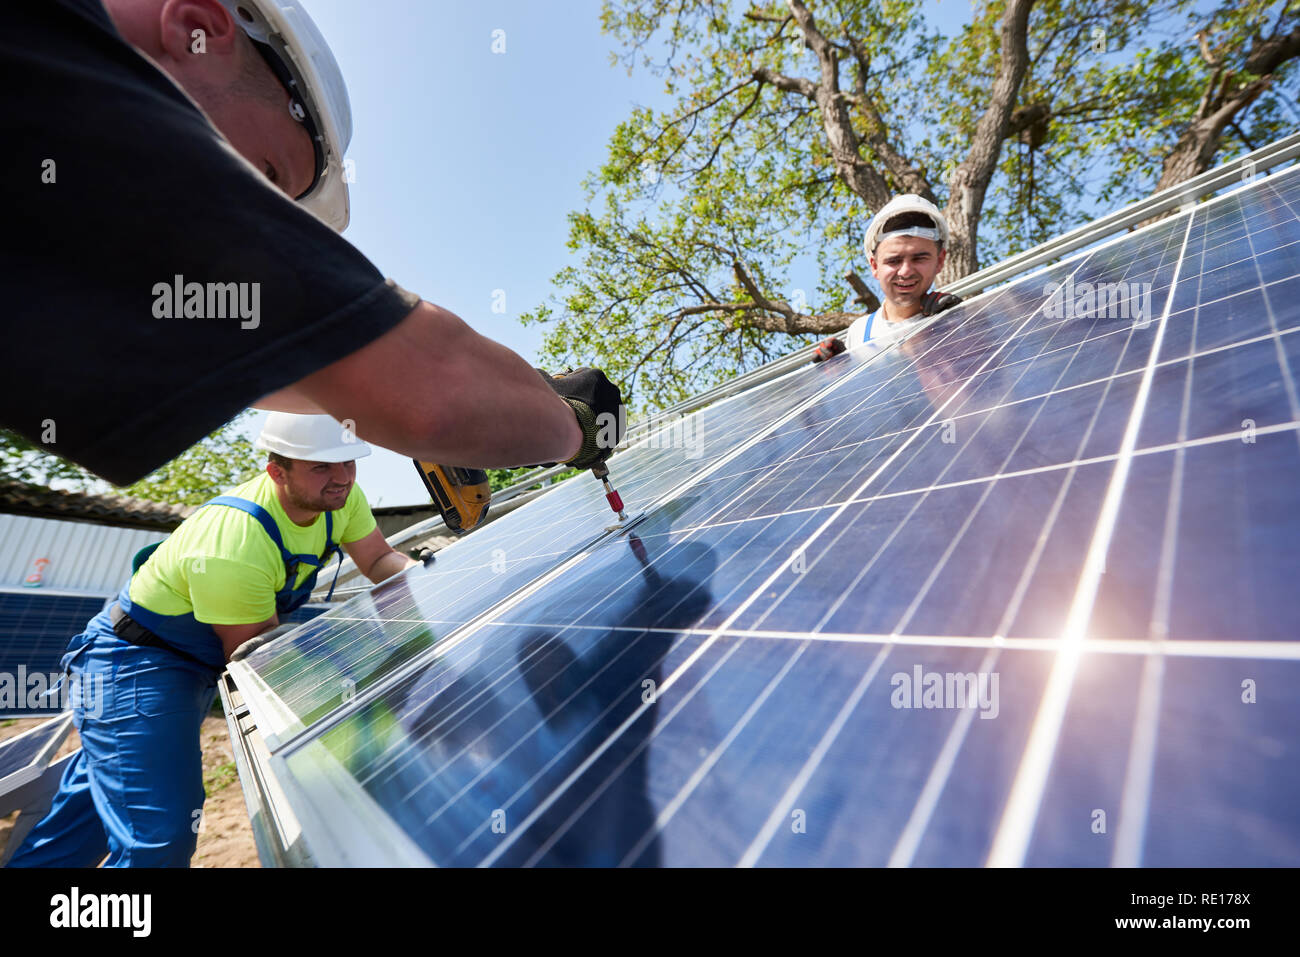 Team of three technicians working on exterior voltaic solar panel system installation in rural countryside on bright sunny summer day. Renewable ecological cheap green energy production concept. Stock Photo